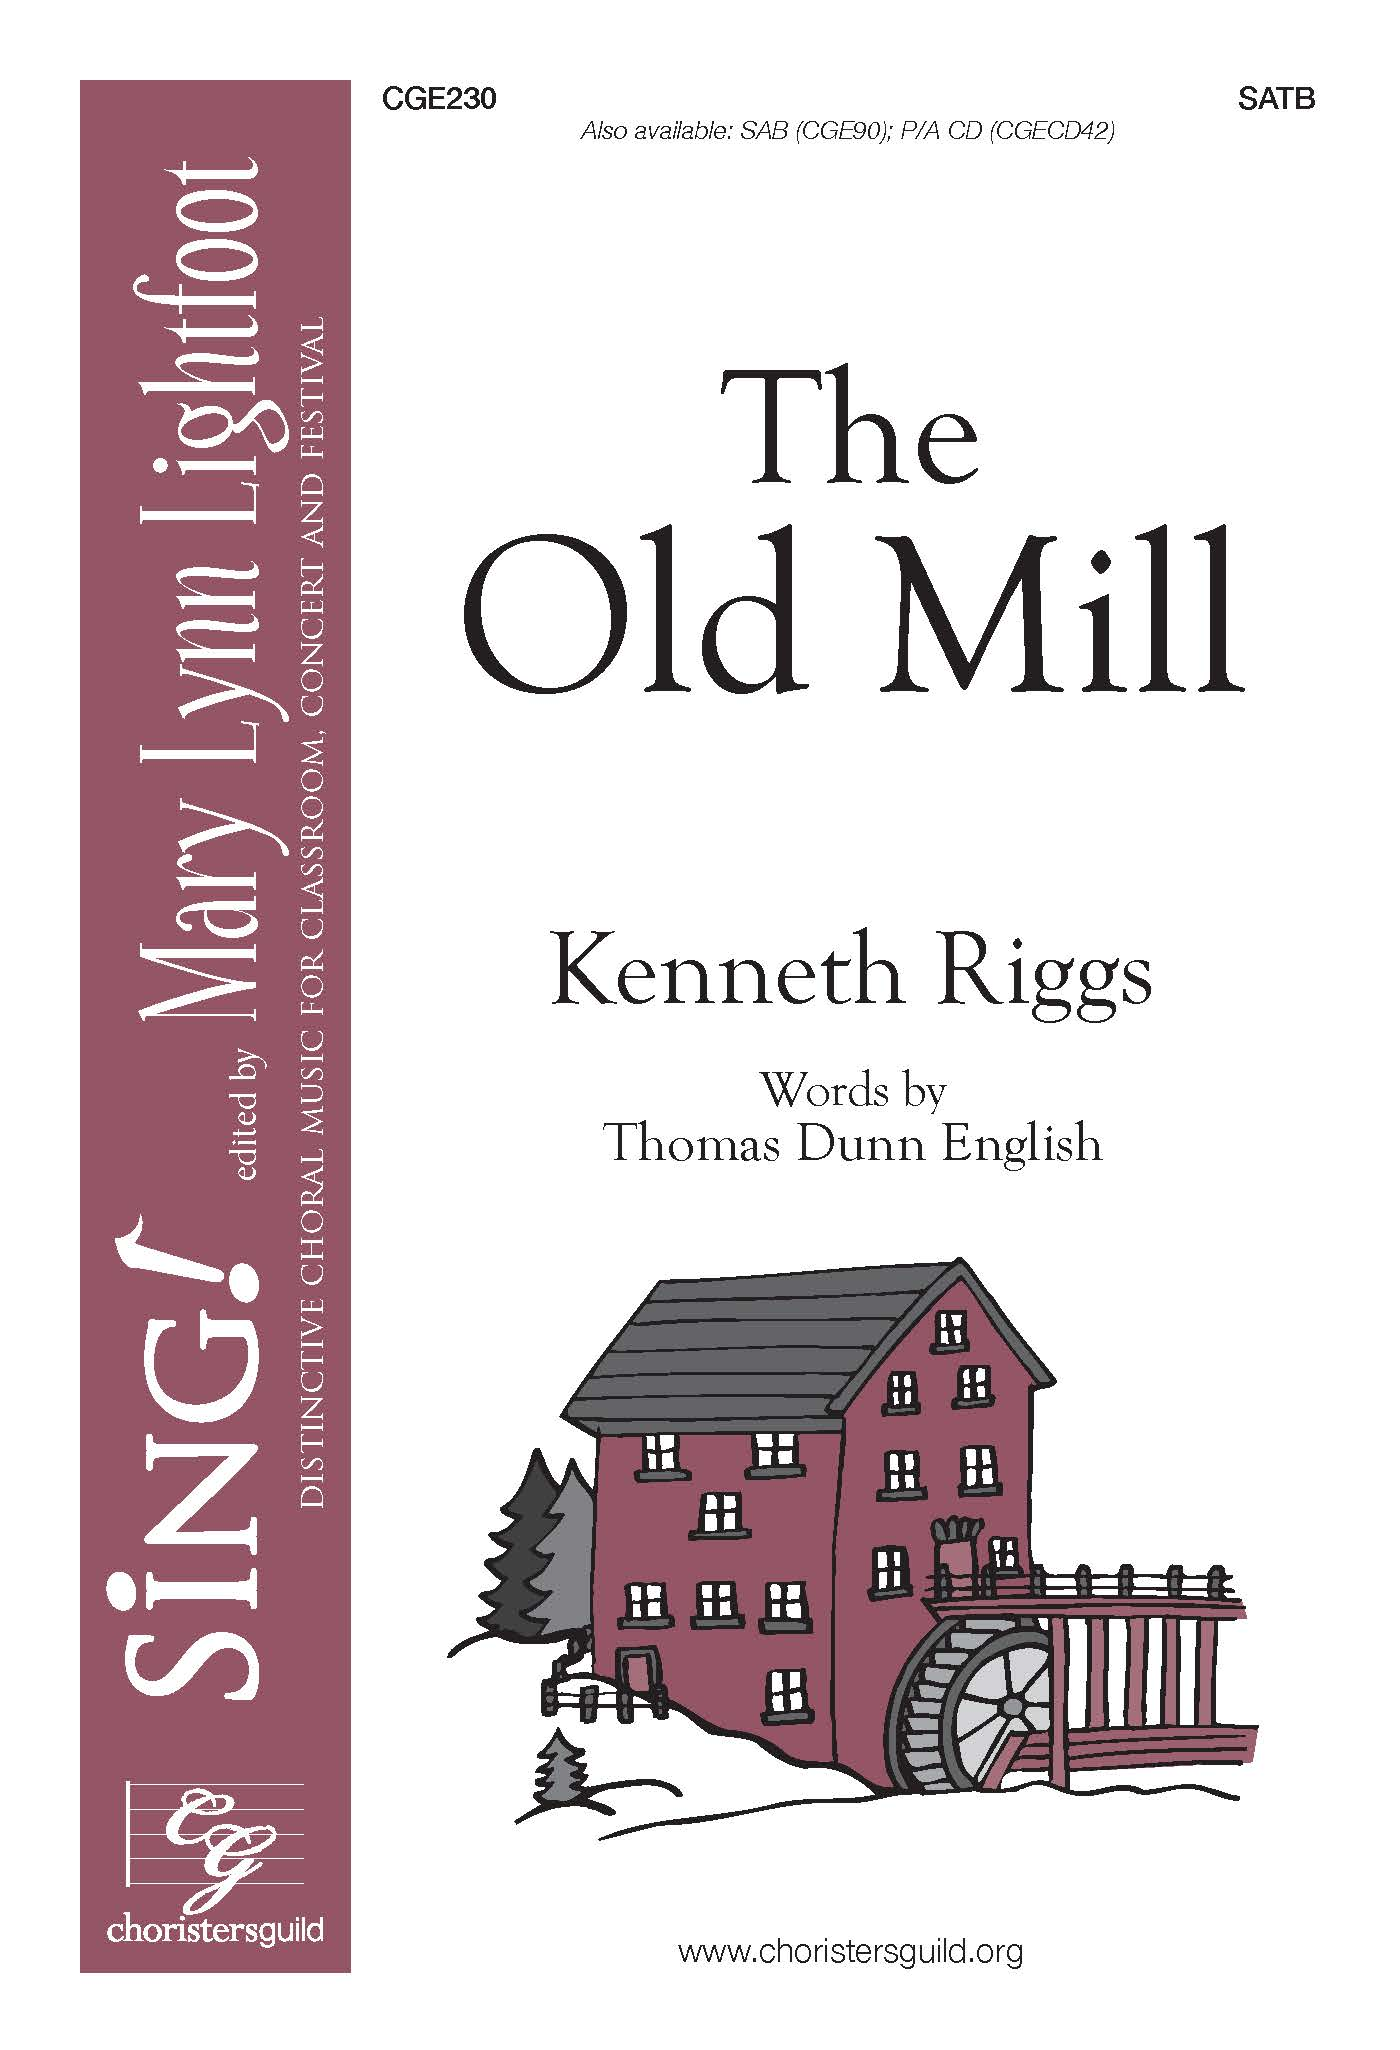 The Old Mill (SATB)